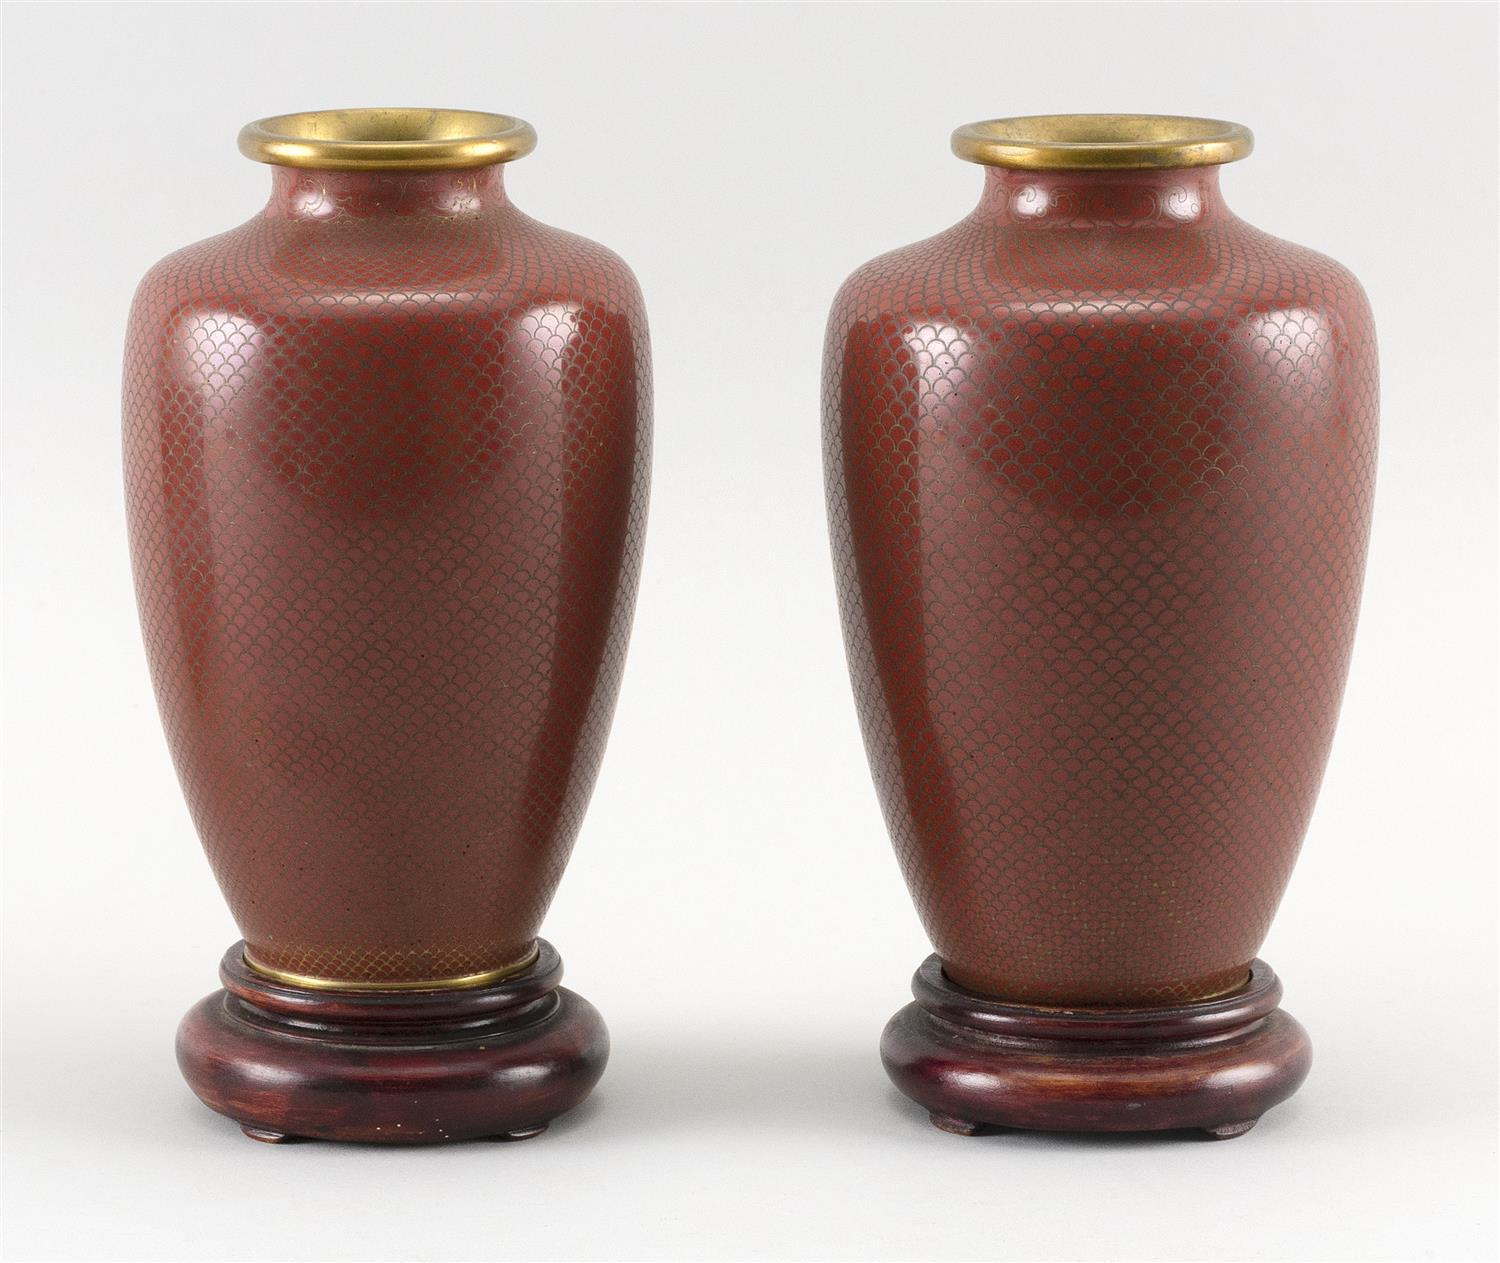 "PAIR OF JAPANESE RED CLOISONNÉ ENAMEL VASES With silver fishscale wirework inlay. Heights 6.5"". With wood stands."